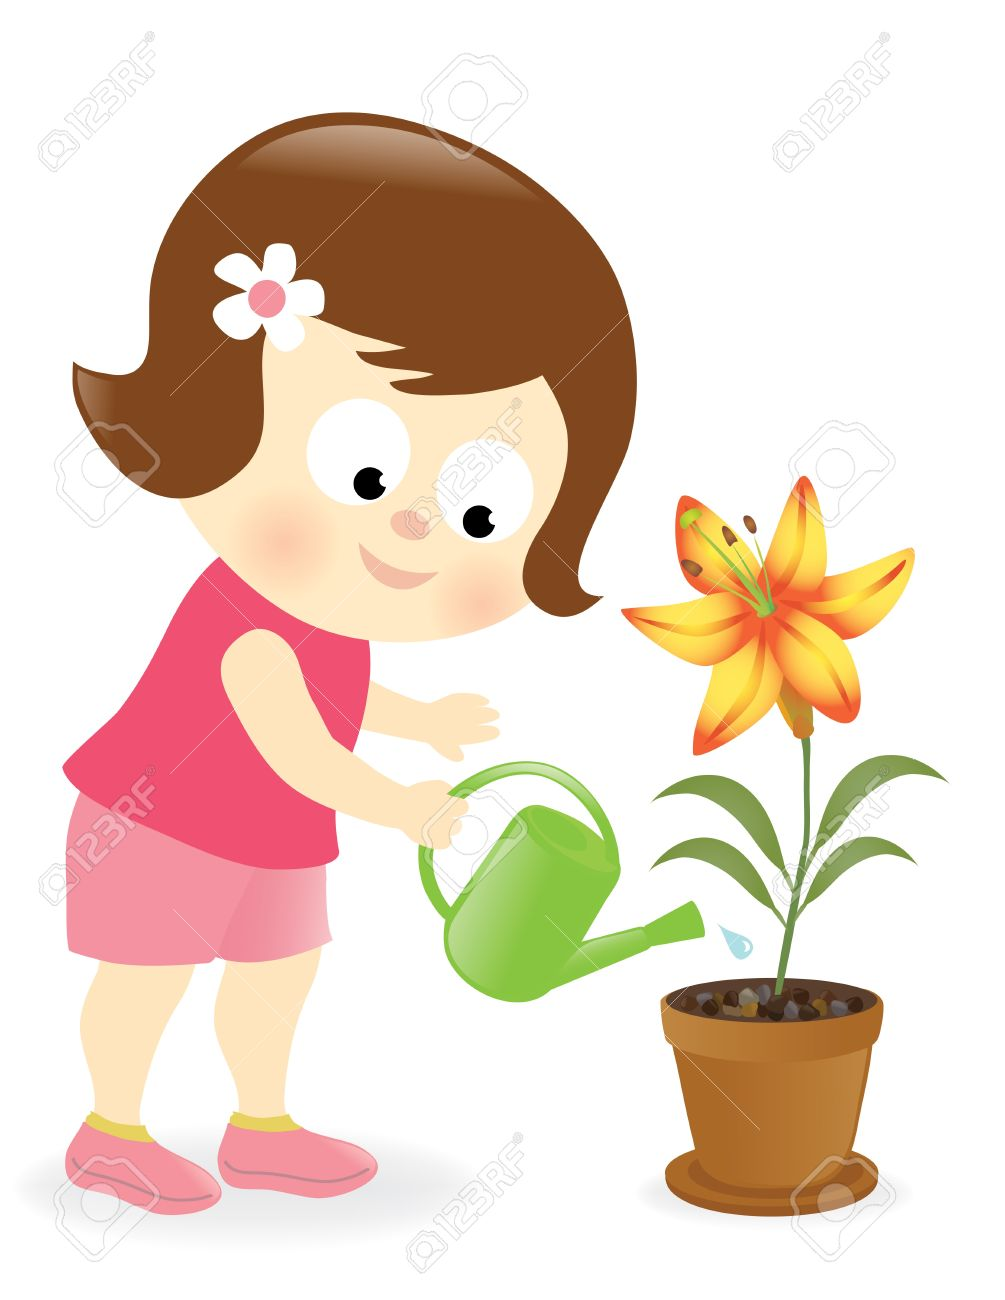 water the plants clipart 10